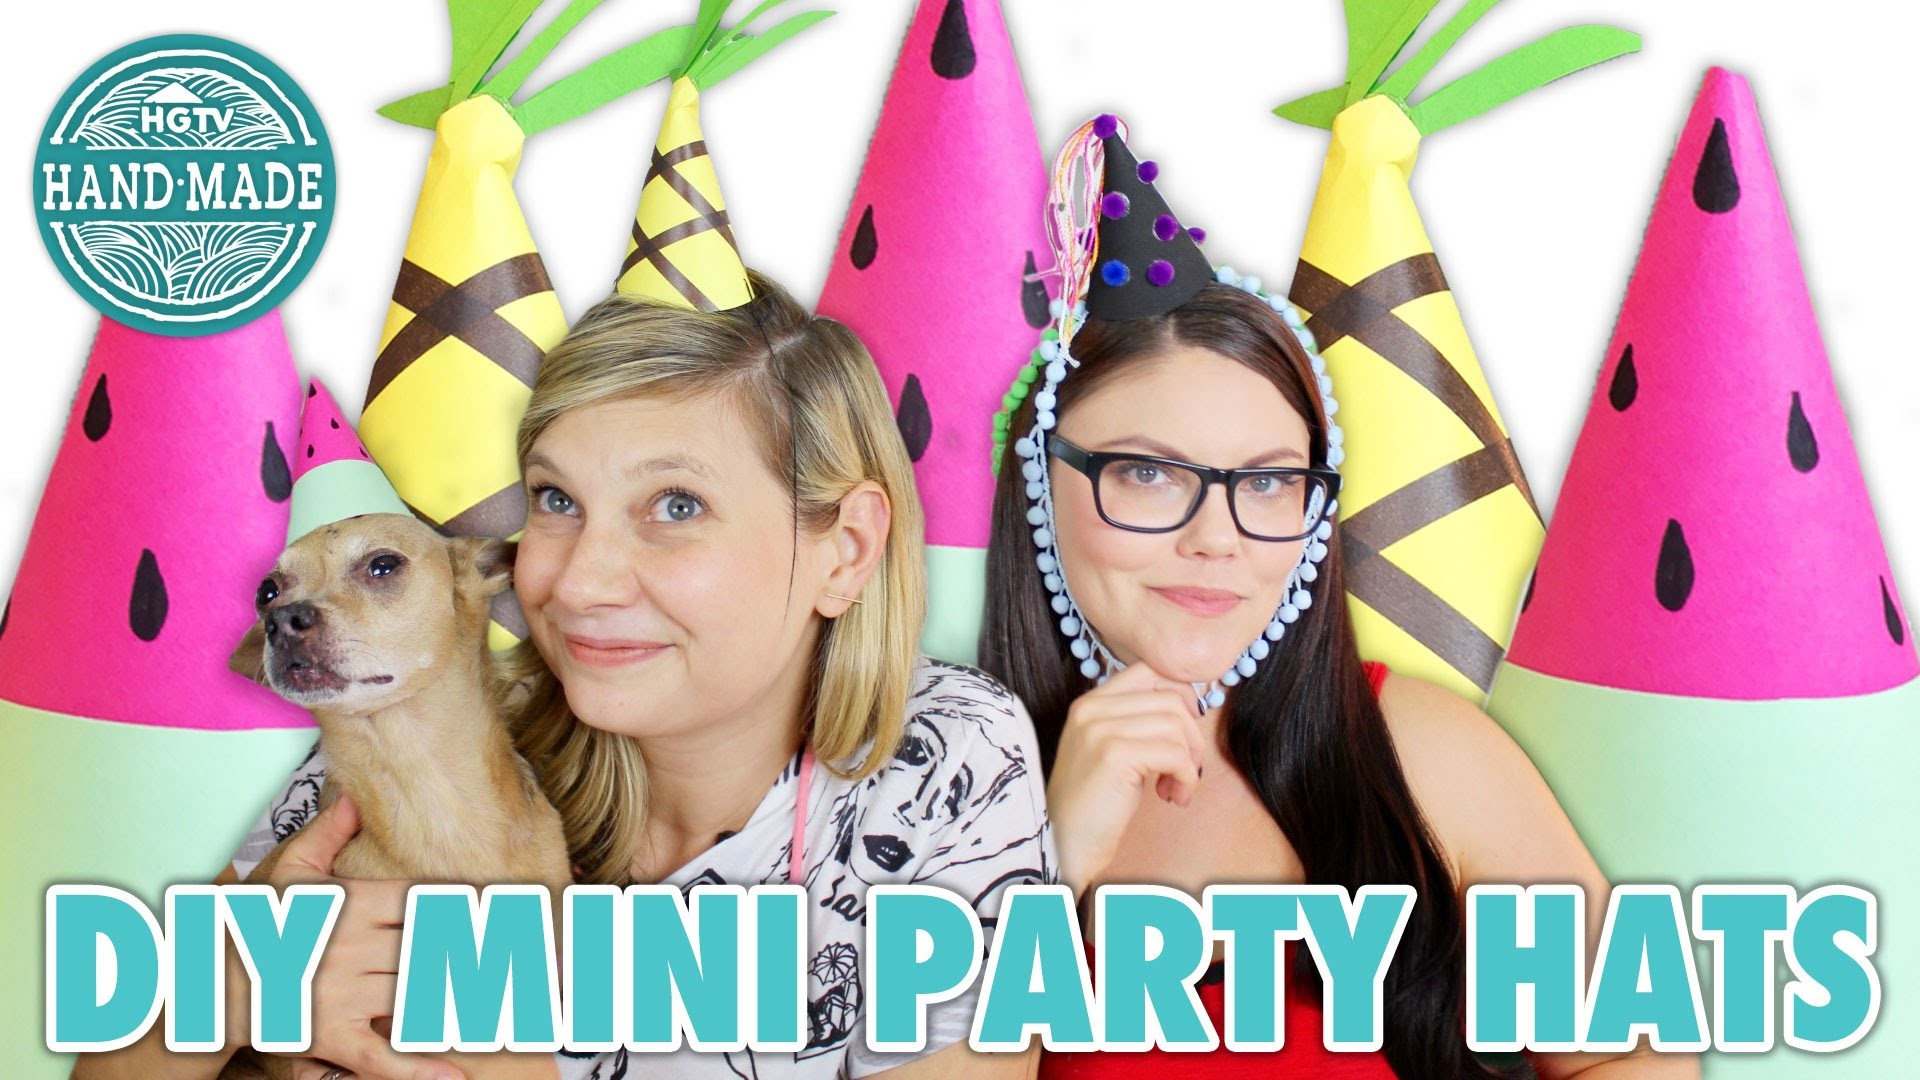 DIY Mini Party Hats with Threadbanger's Corinne Leigh - HGTV Handmade